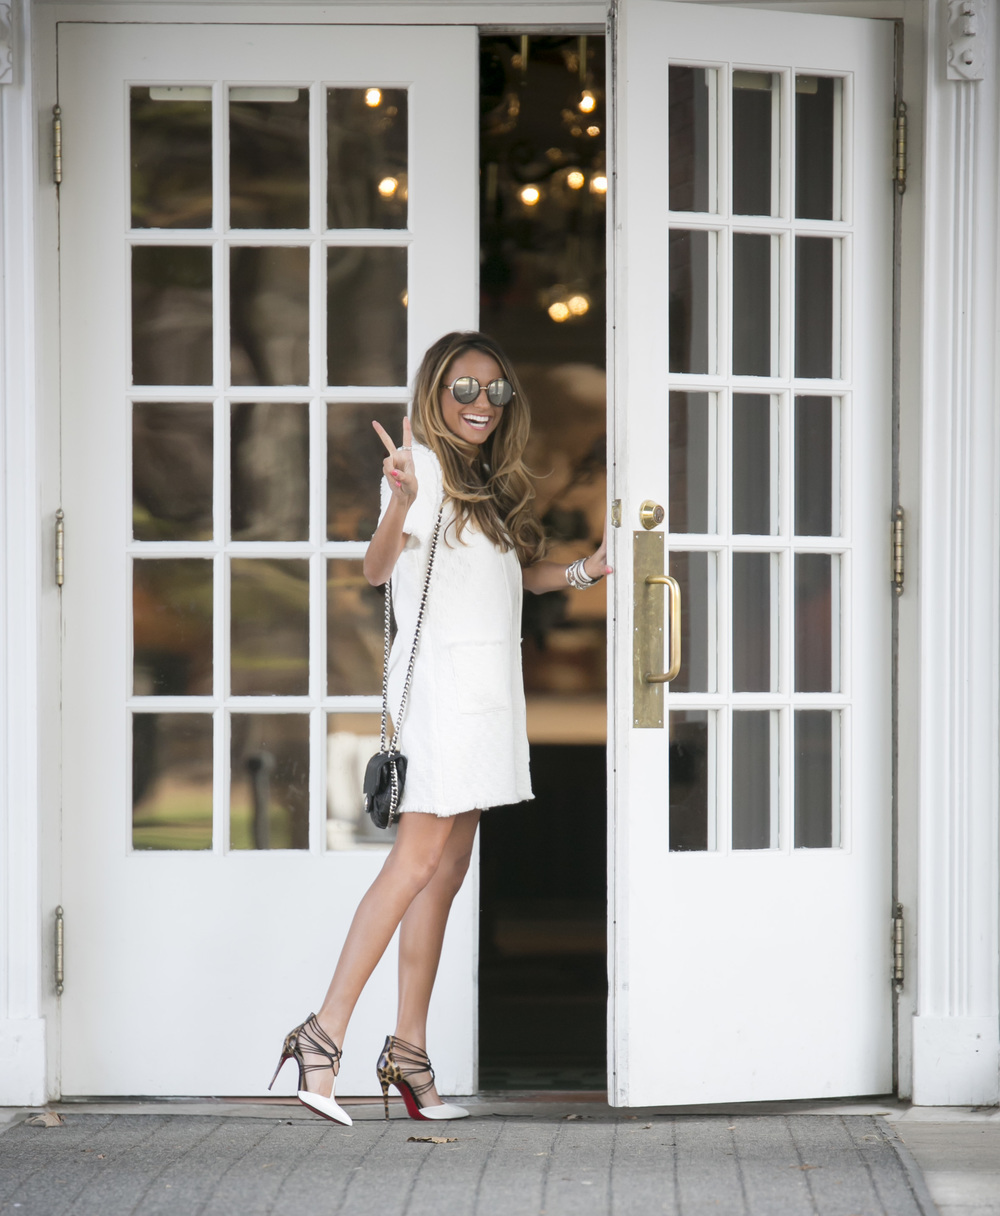 Dress: JOA |Pumps:Christian Louboutin|Sunnies: Jimmy Choo     Dino Petrocelli Photography